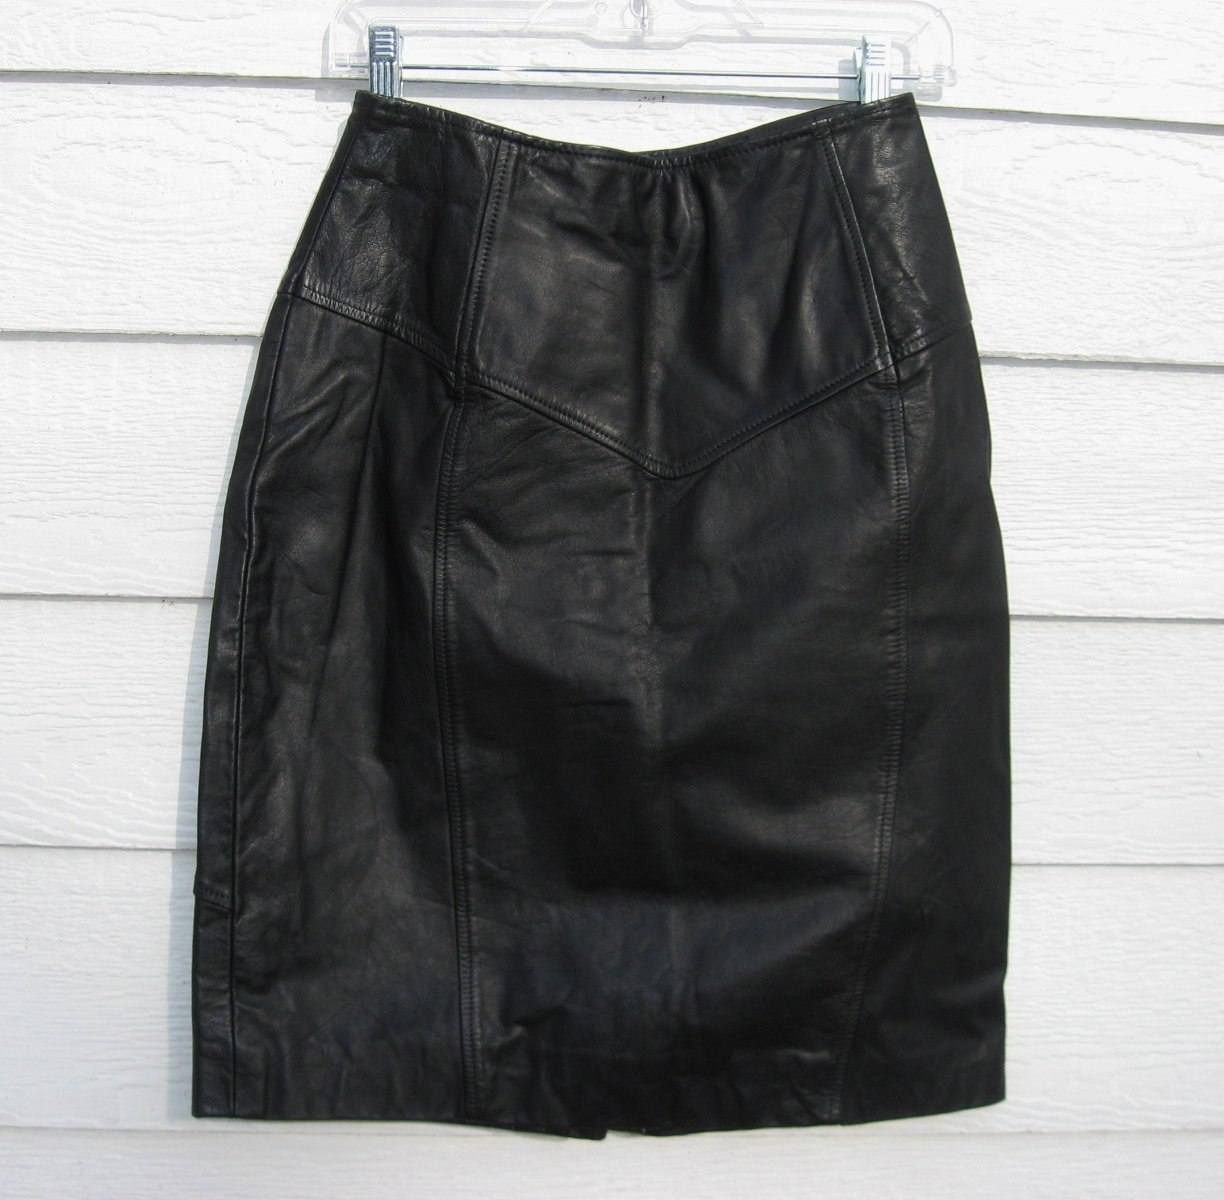 Design Assets Leather Skirt 26 Waist 8/10 Lined Black Straight